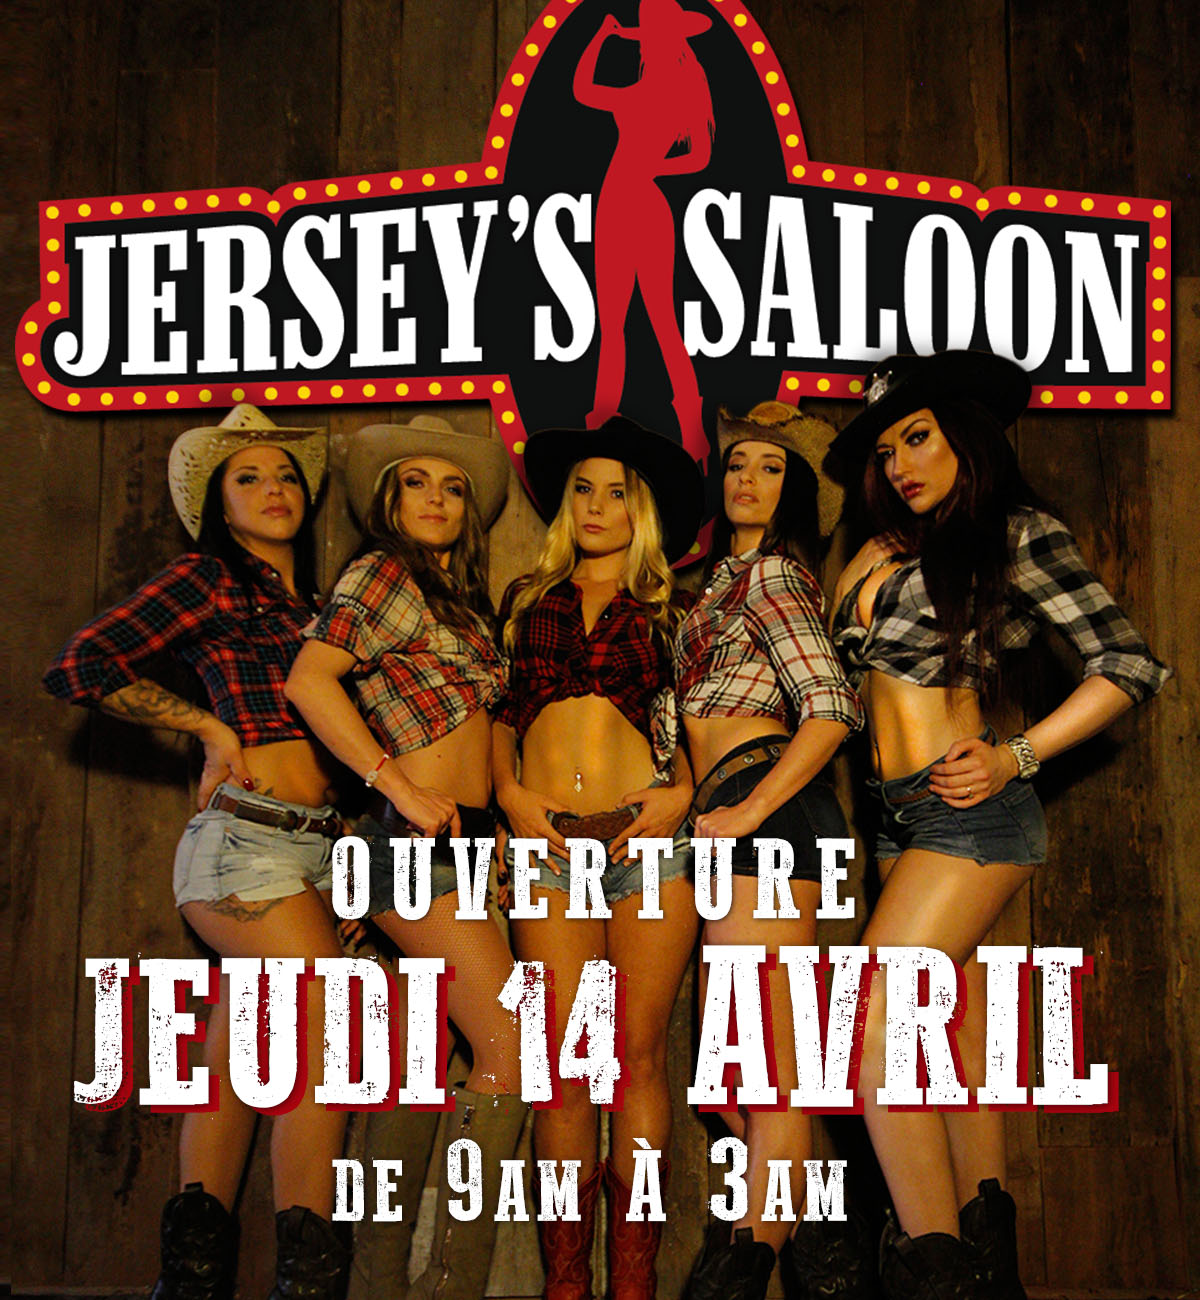 Jerseys Saloon Poster design opening party Montreal Bar